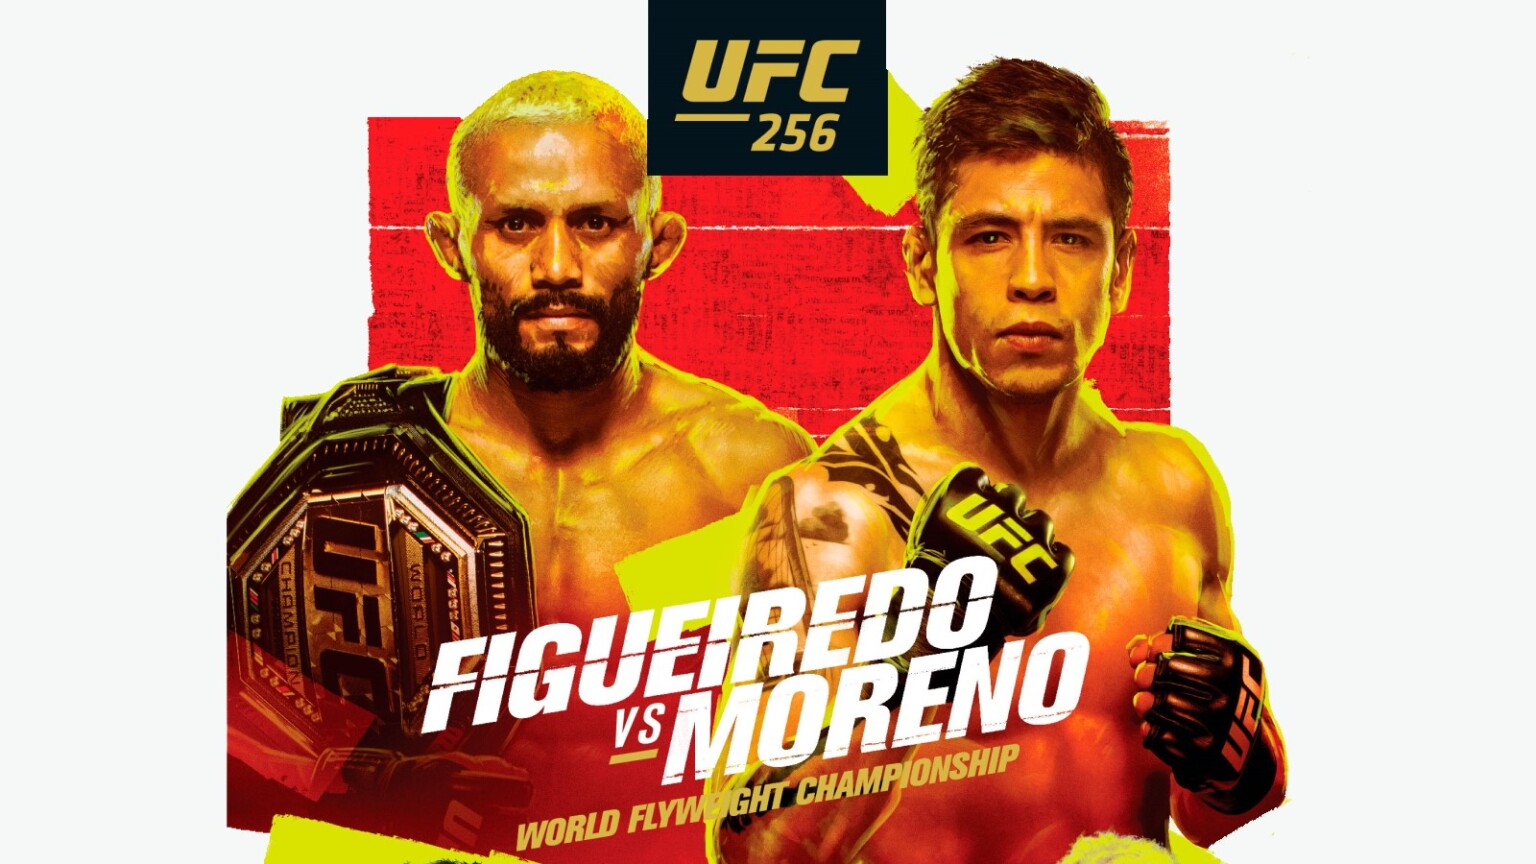 UFC 256: Figueiredo vs. Moreno Weigh-In Photo and Video